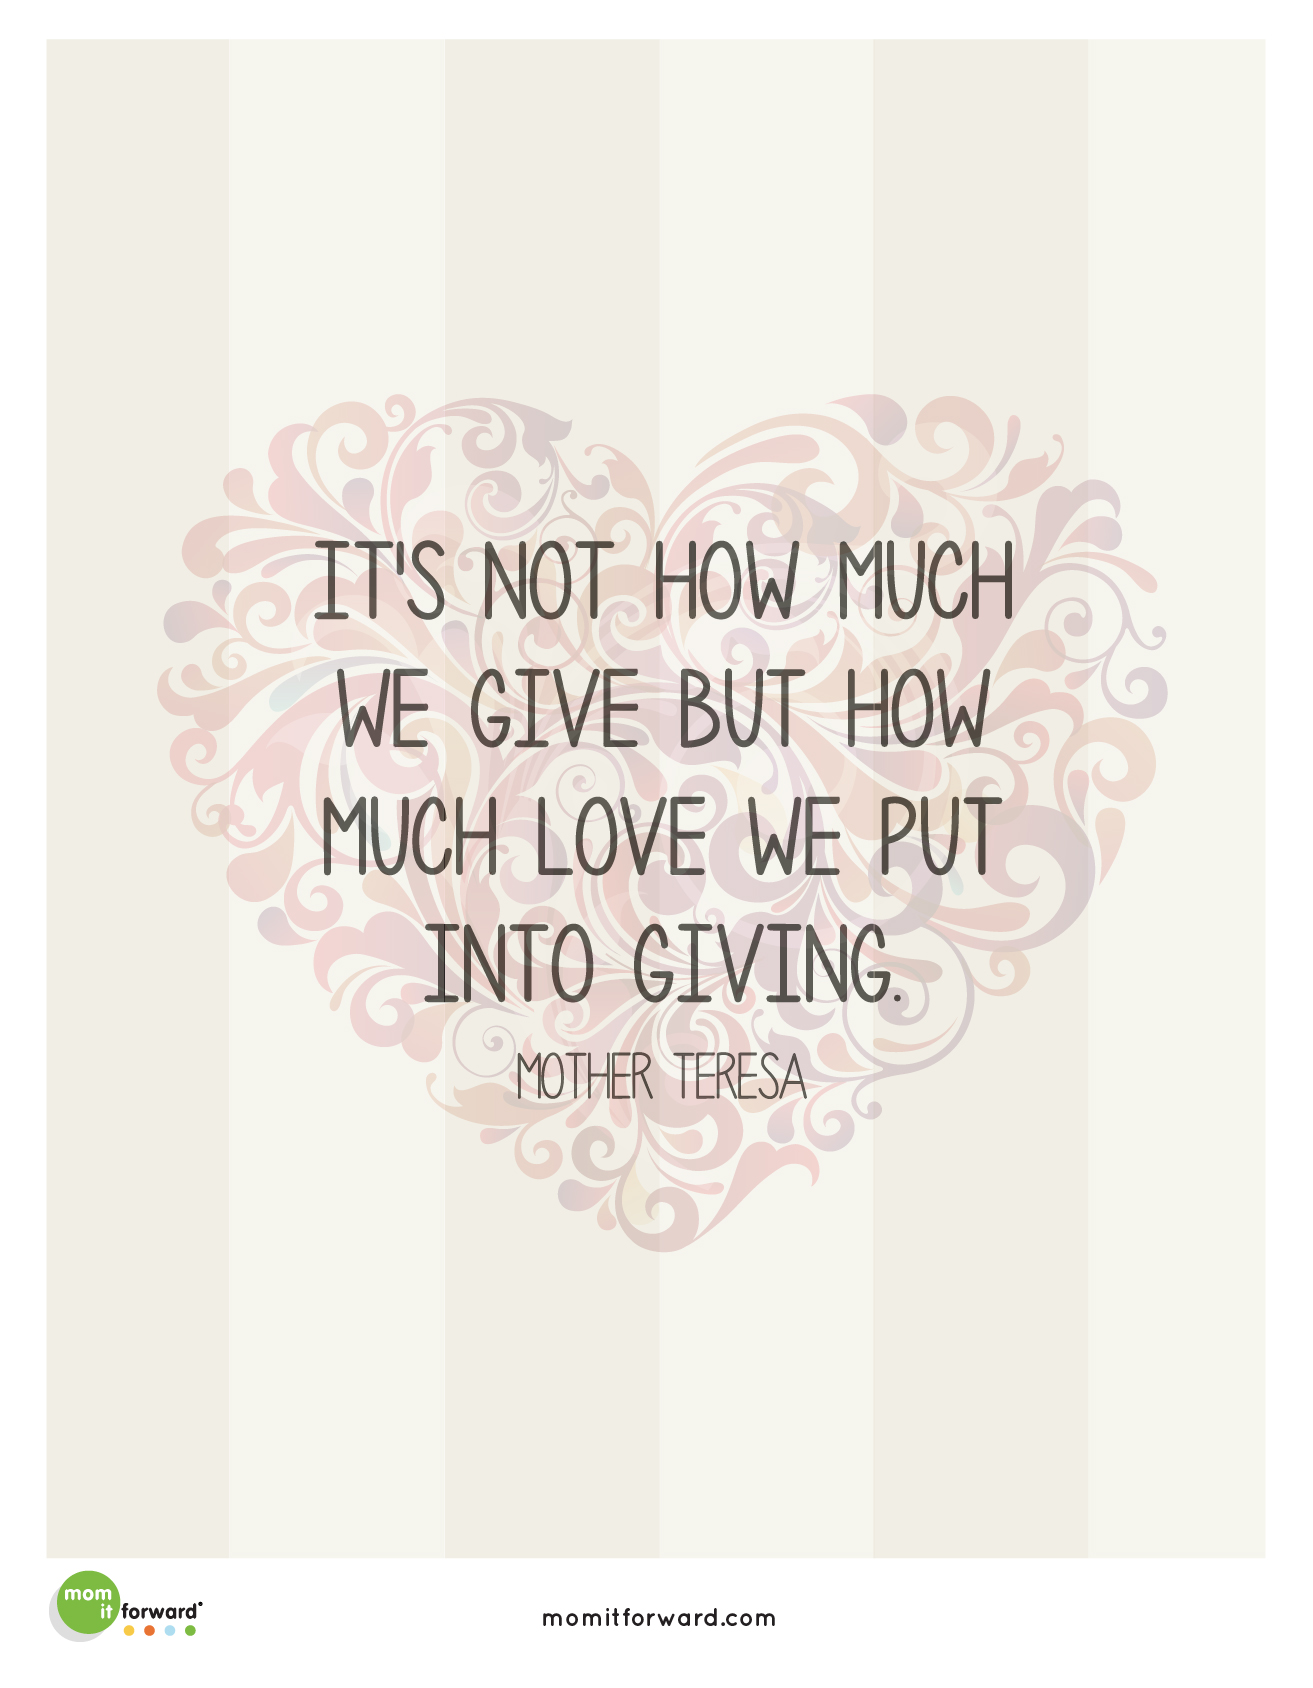 Quotes About A Mother's Love Mother Teresa Giving Quote  Mom It Forwardmom It Forward